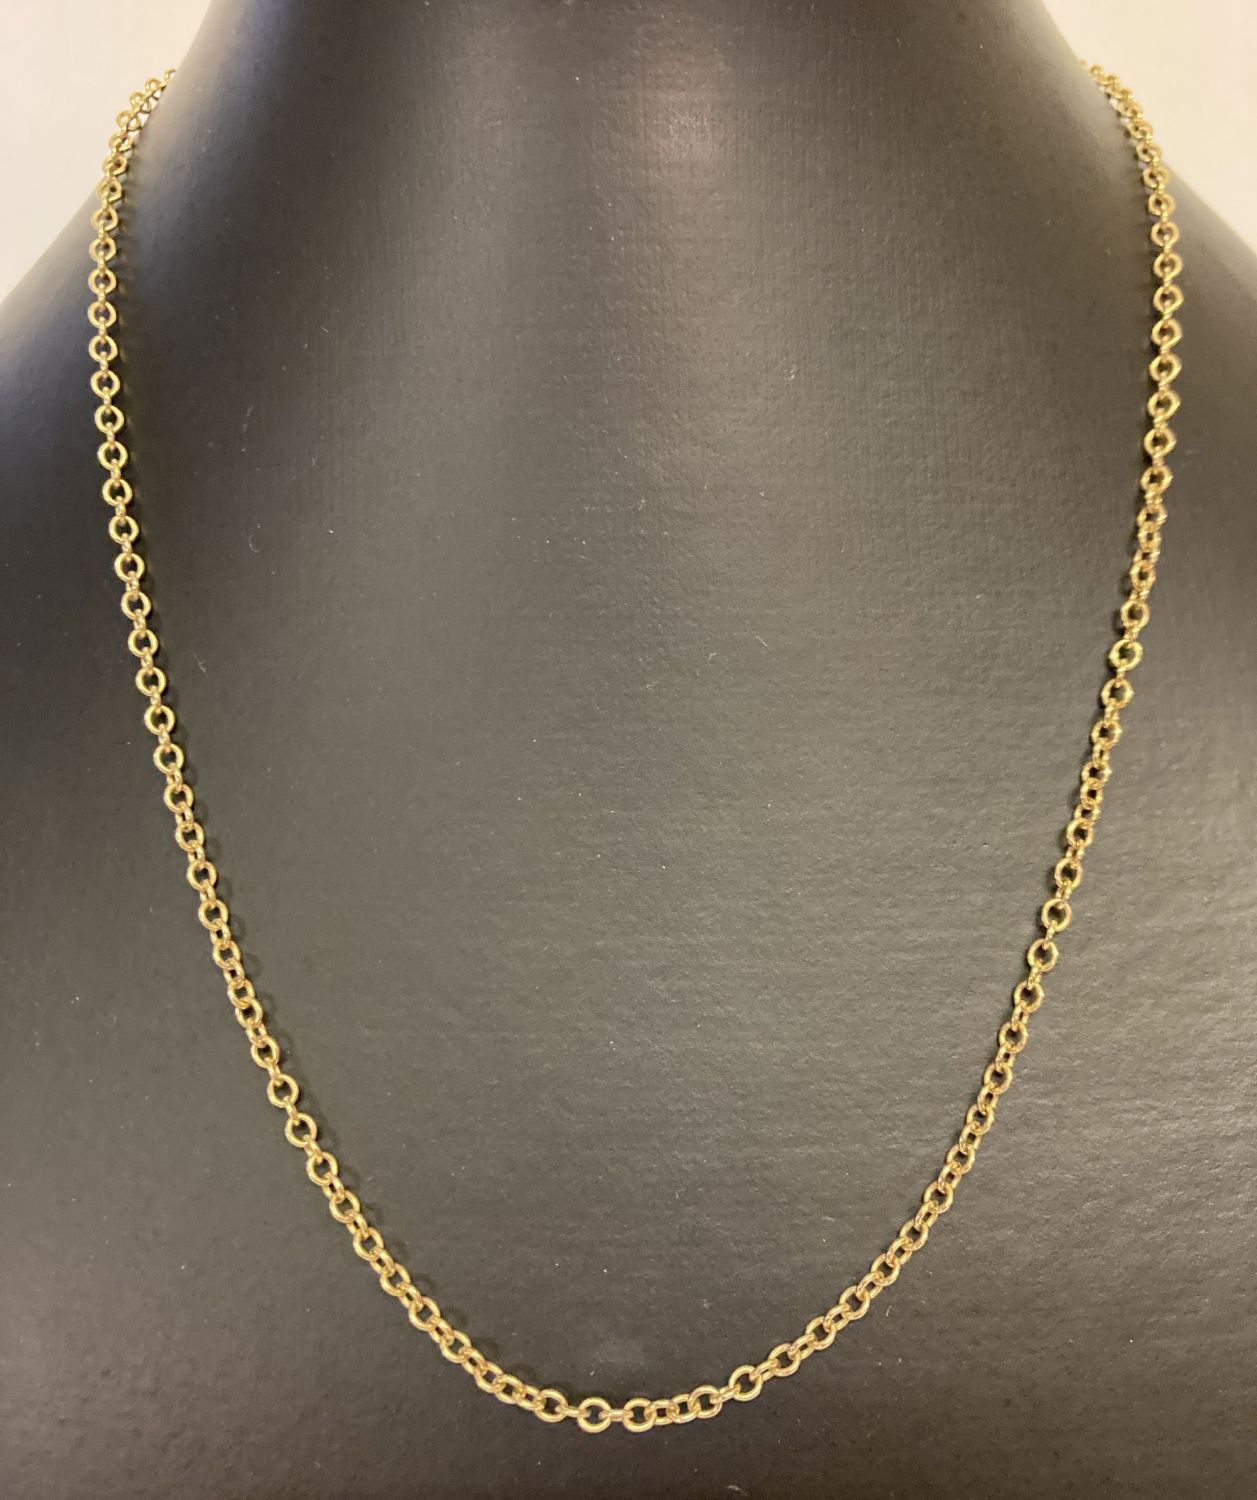 """A 9ct gold 18"""" belcher chain, marked 9ct to clasp."""